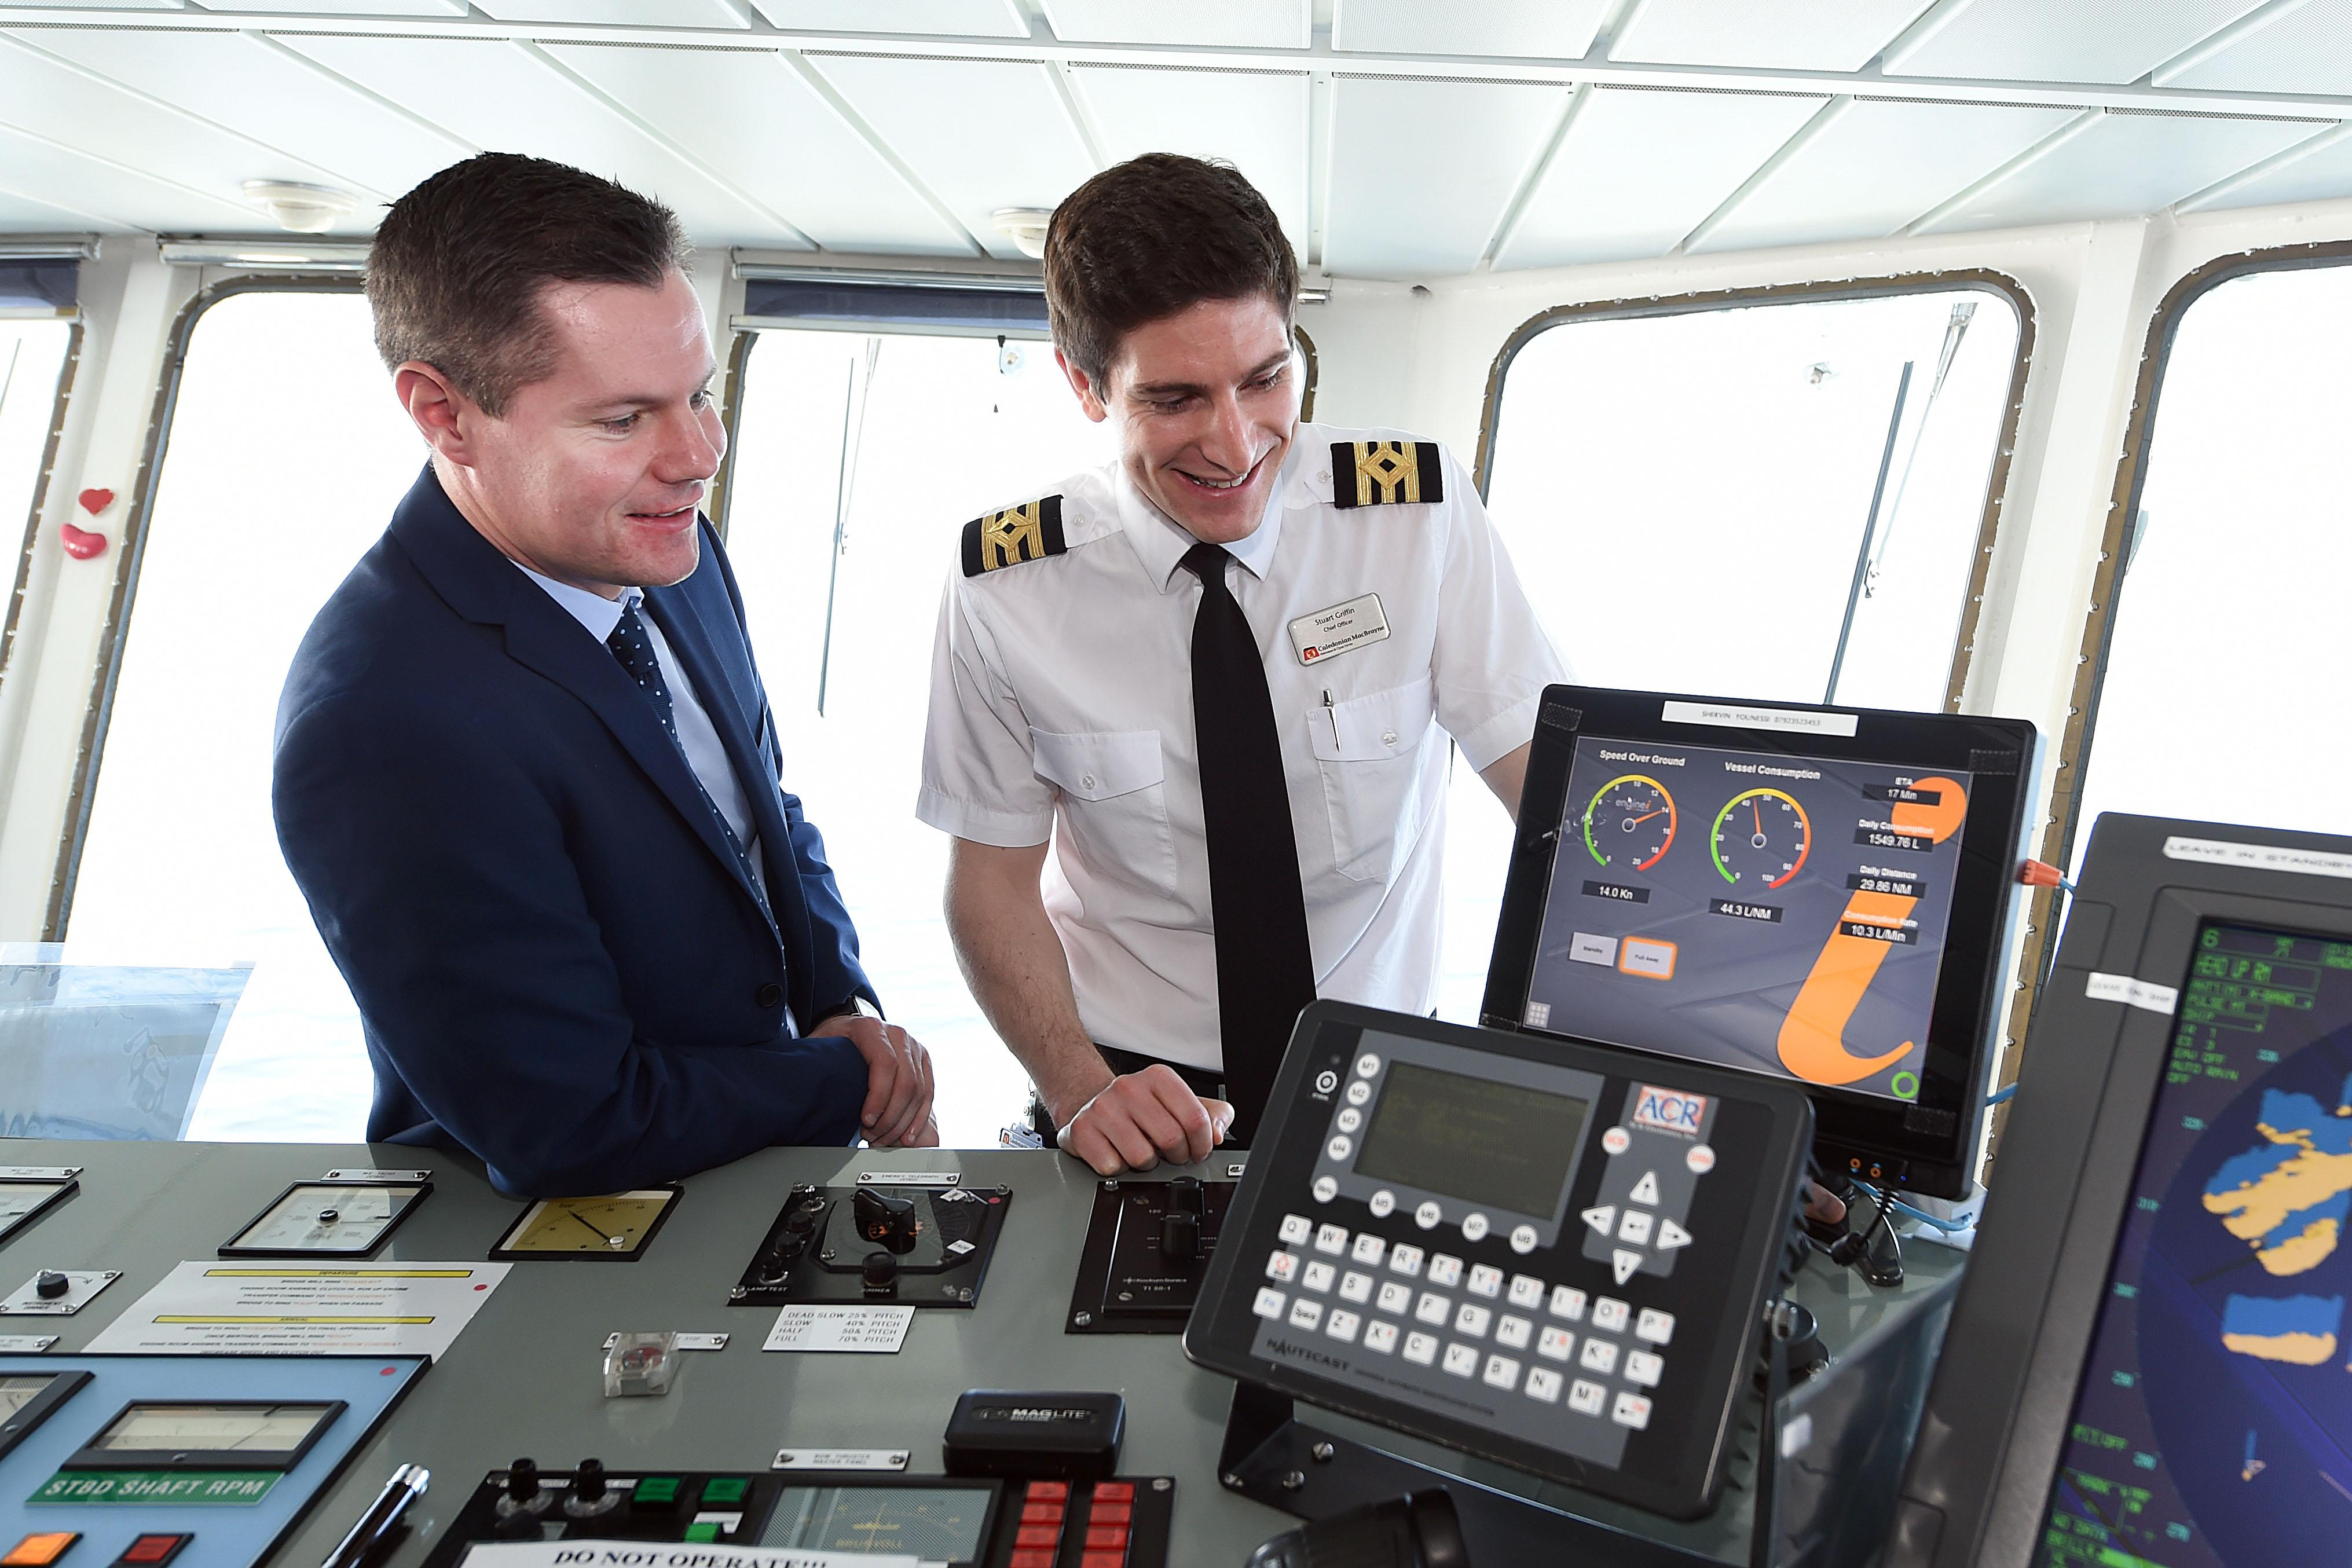 minister for transport and islands visit mv caledonian isles to learn more about calmac's drive to reduce greenhouse gas emissions